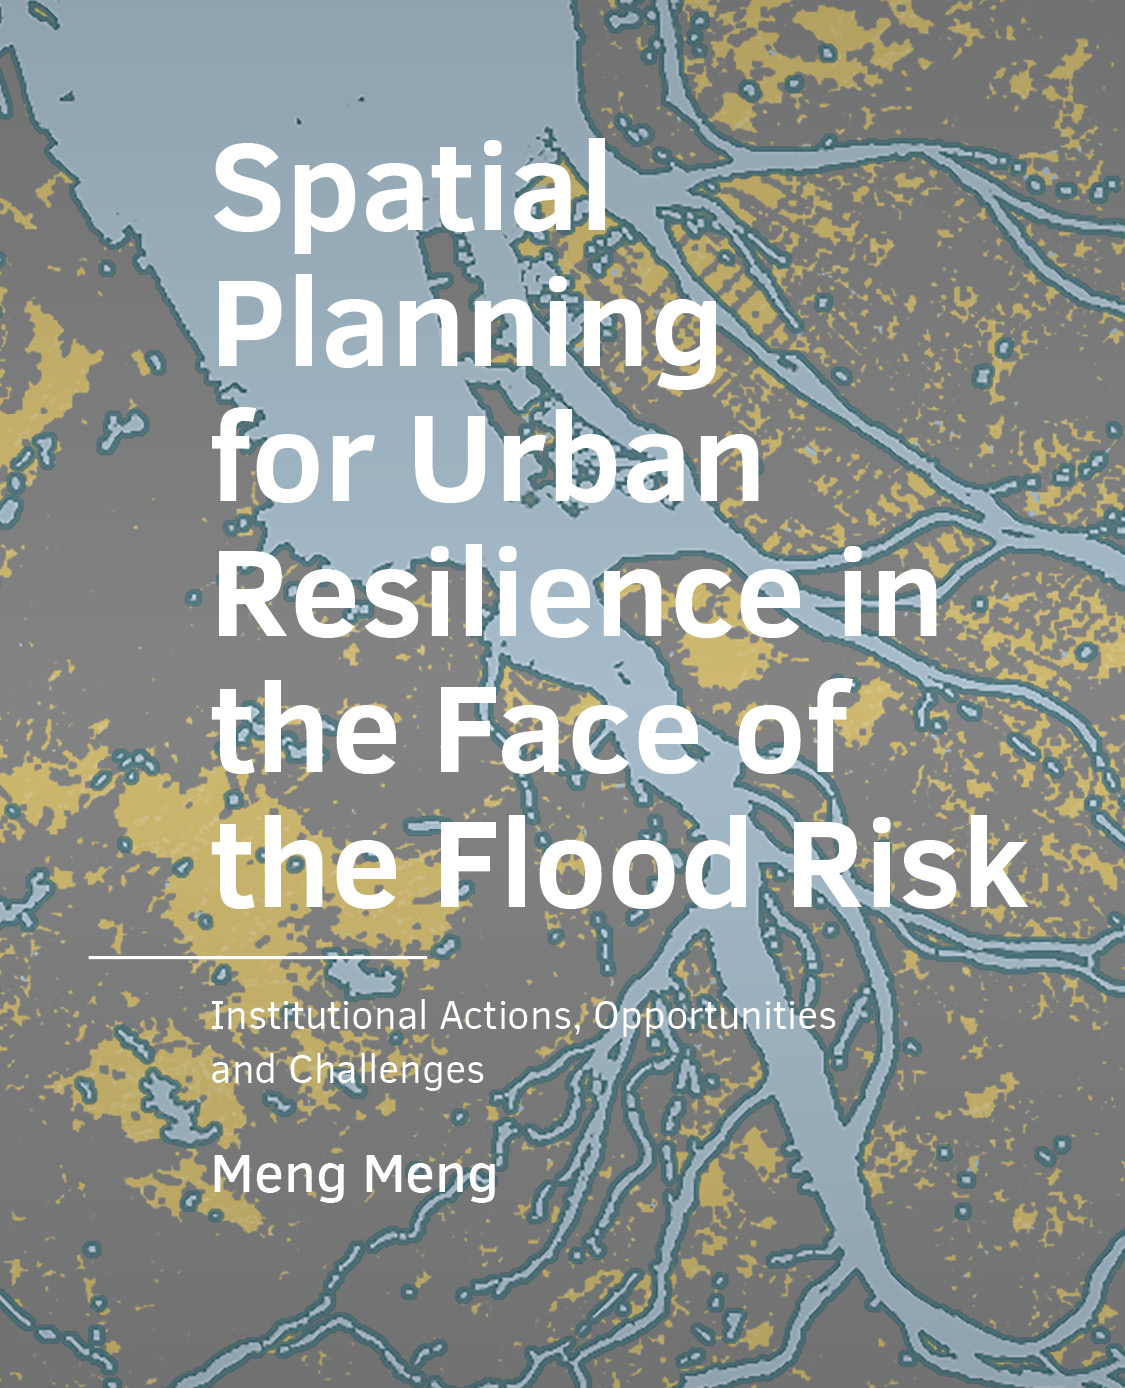 View No. 04 (2021): Spatial Planning for Urban Resilience in the Face of the Flood Risk